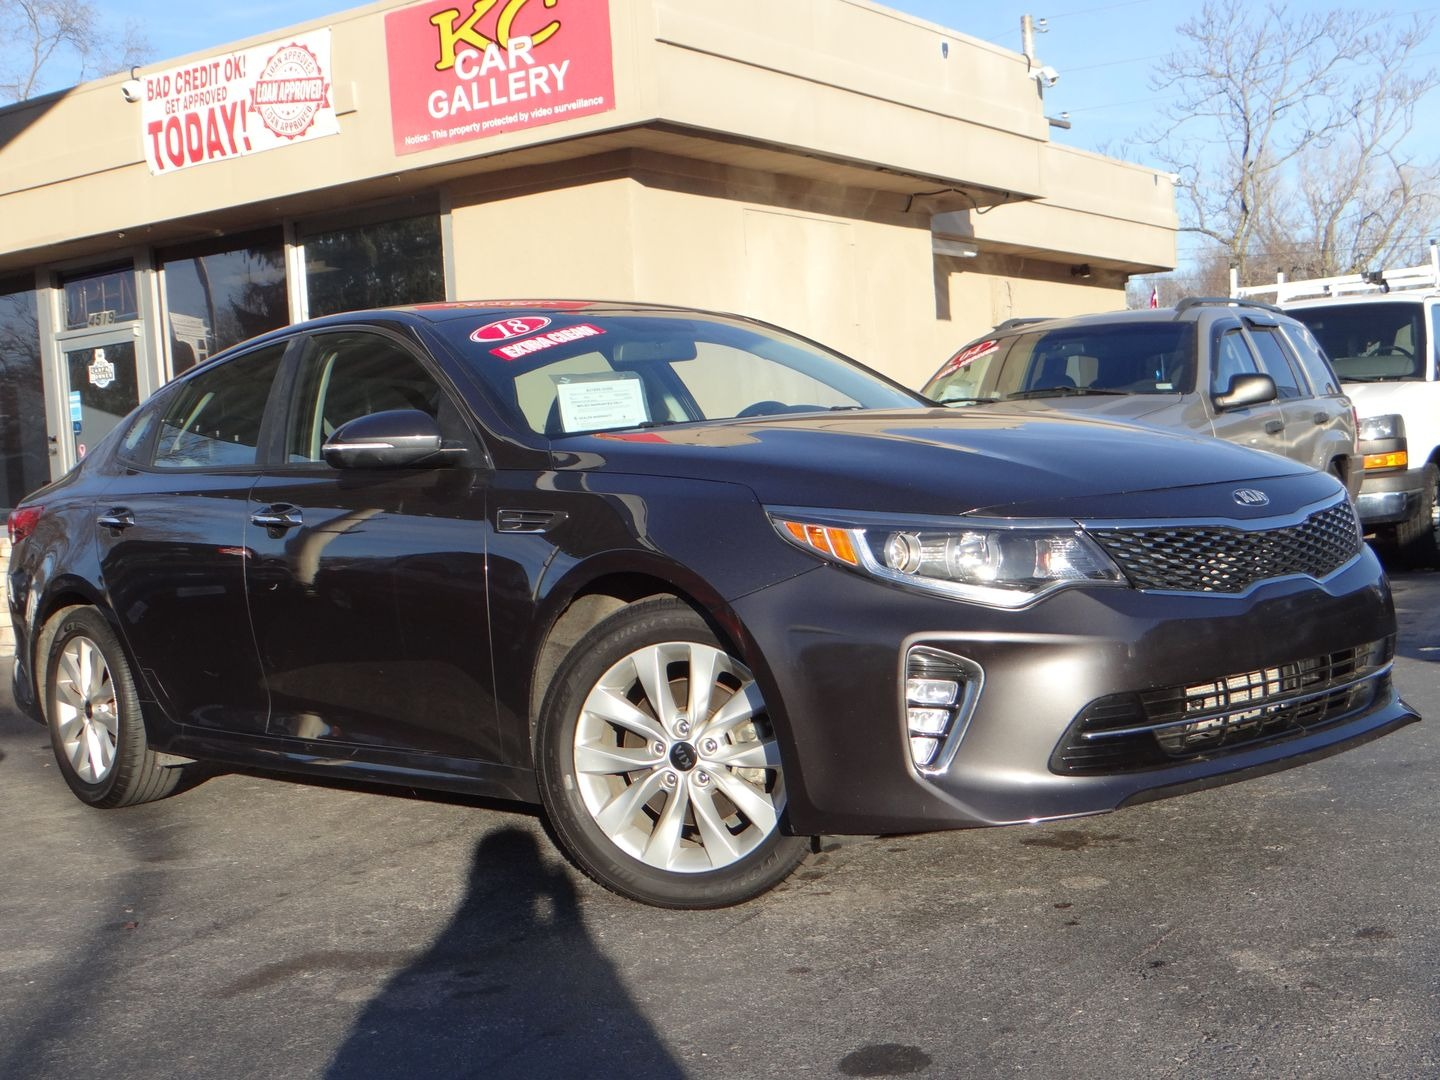 2018 Kia Optima . Lot 999186810310 Vin 5XXGT4L31JG207077